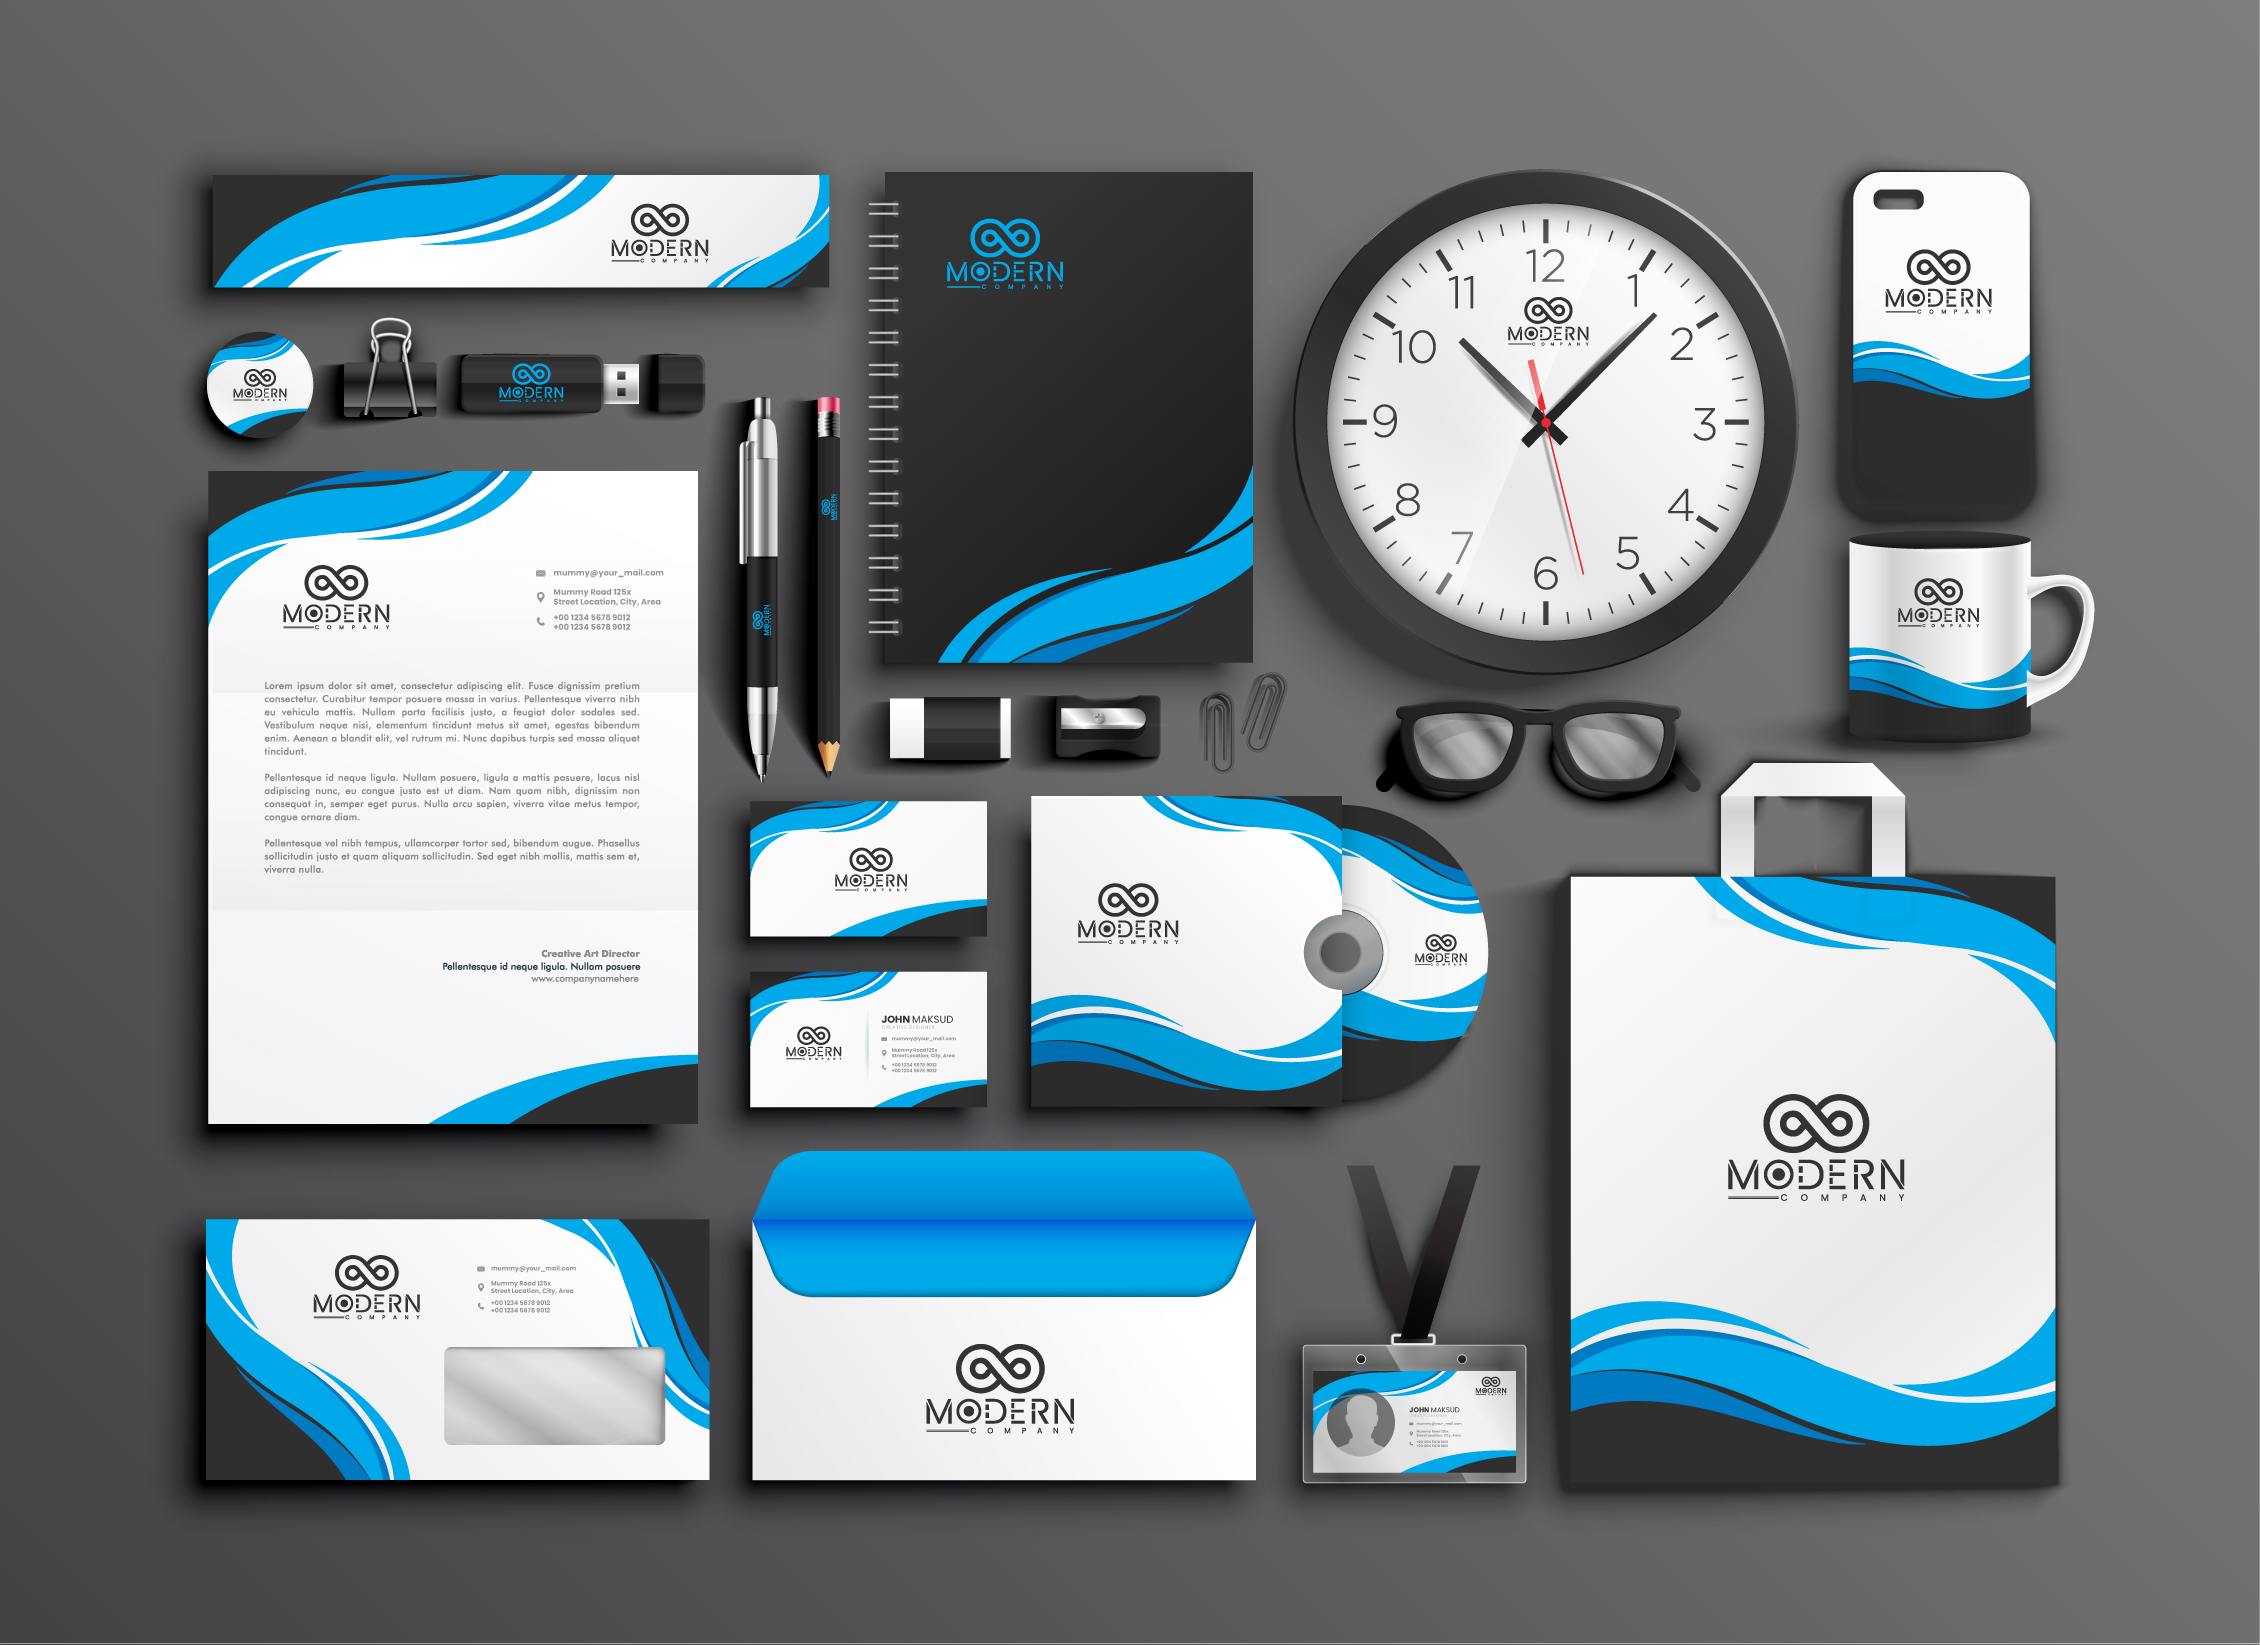 I will design business card,  logo invoice,  and full stationery items